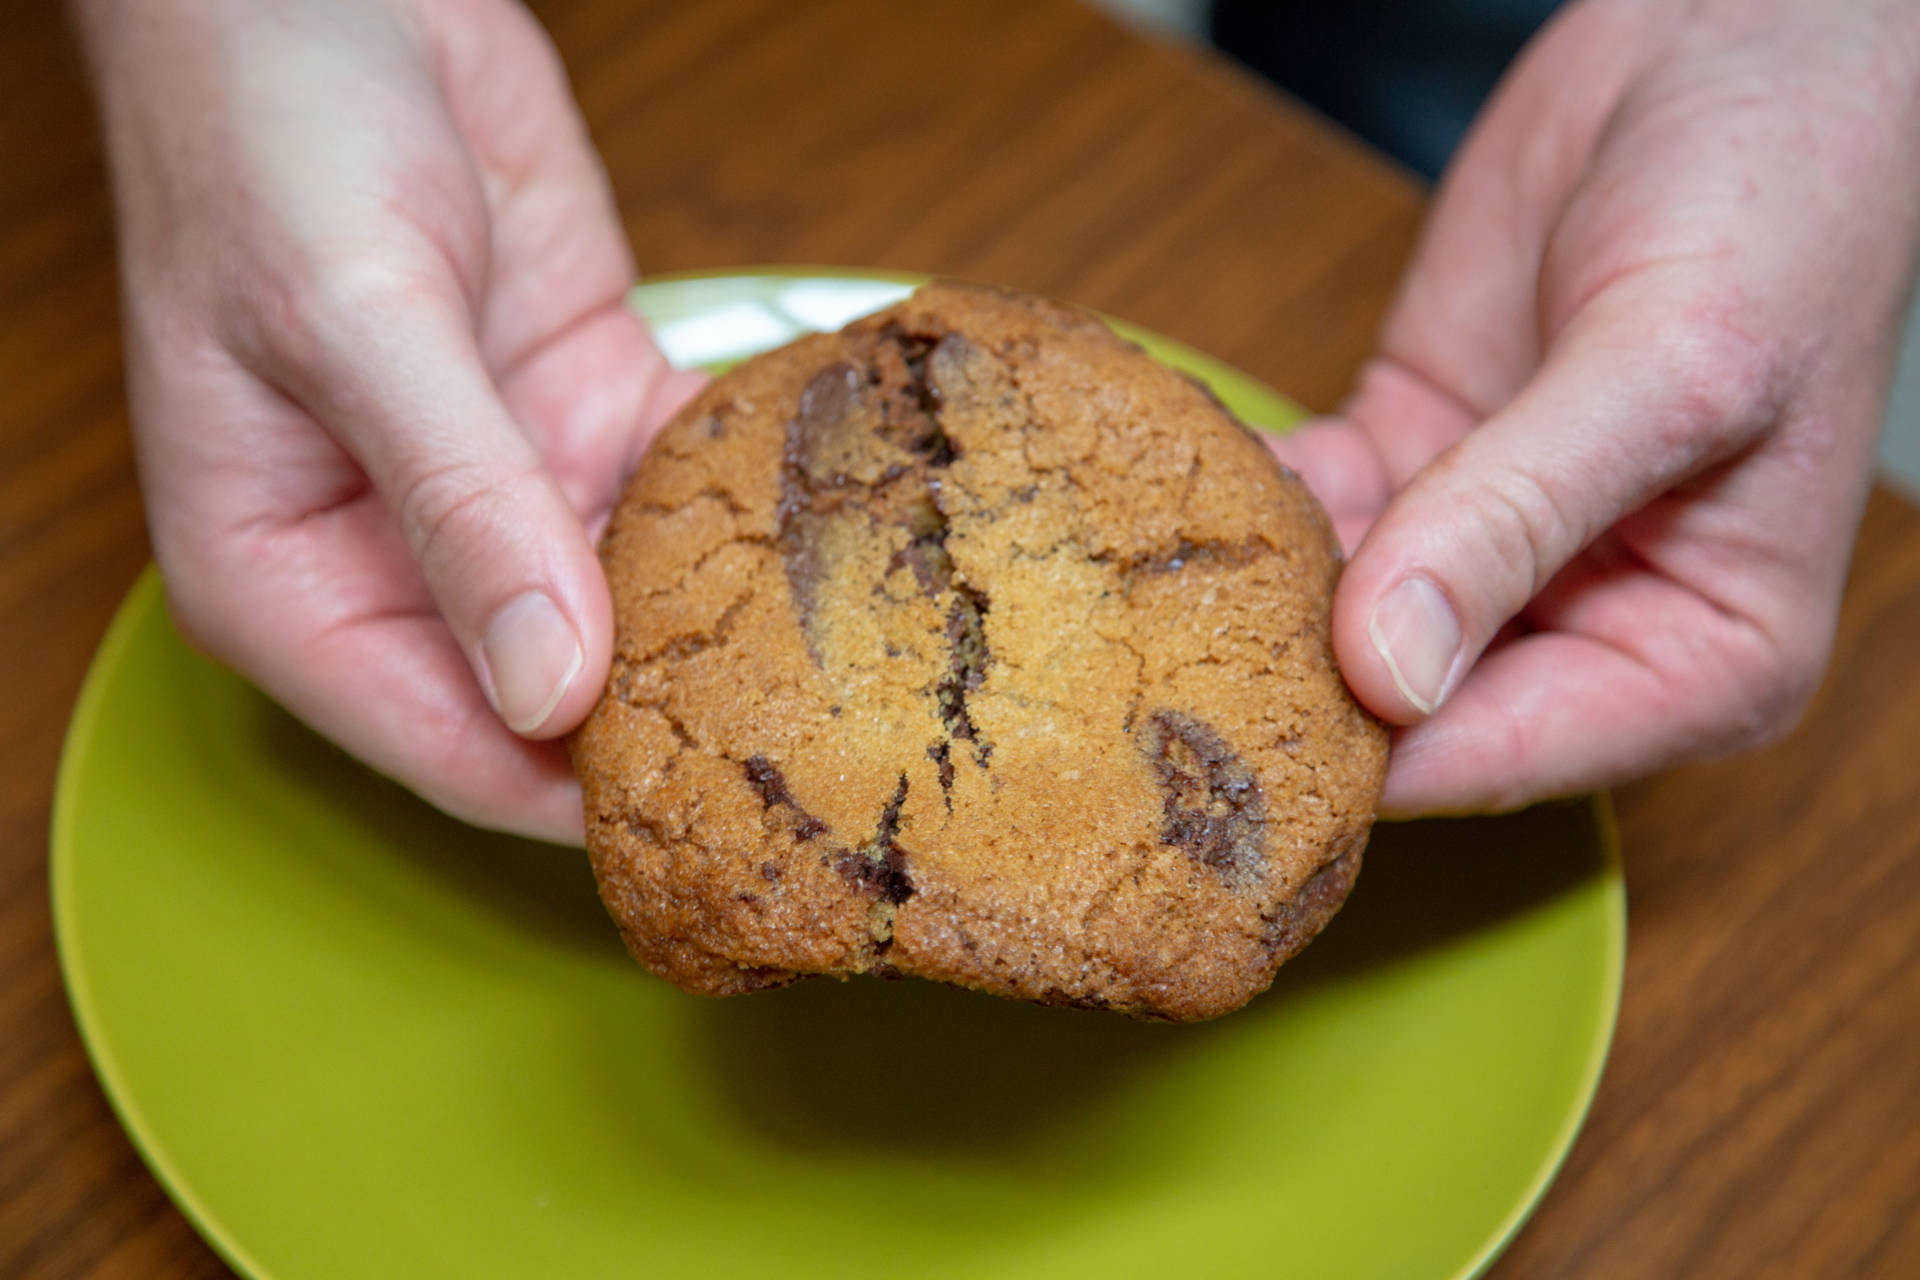 Arsicault Bakery's cookie verdict: this cookie has it all.